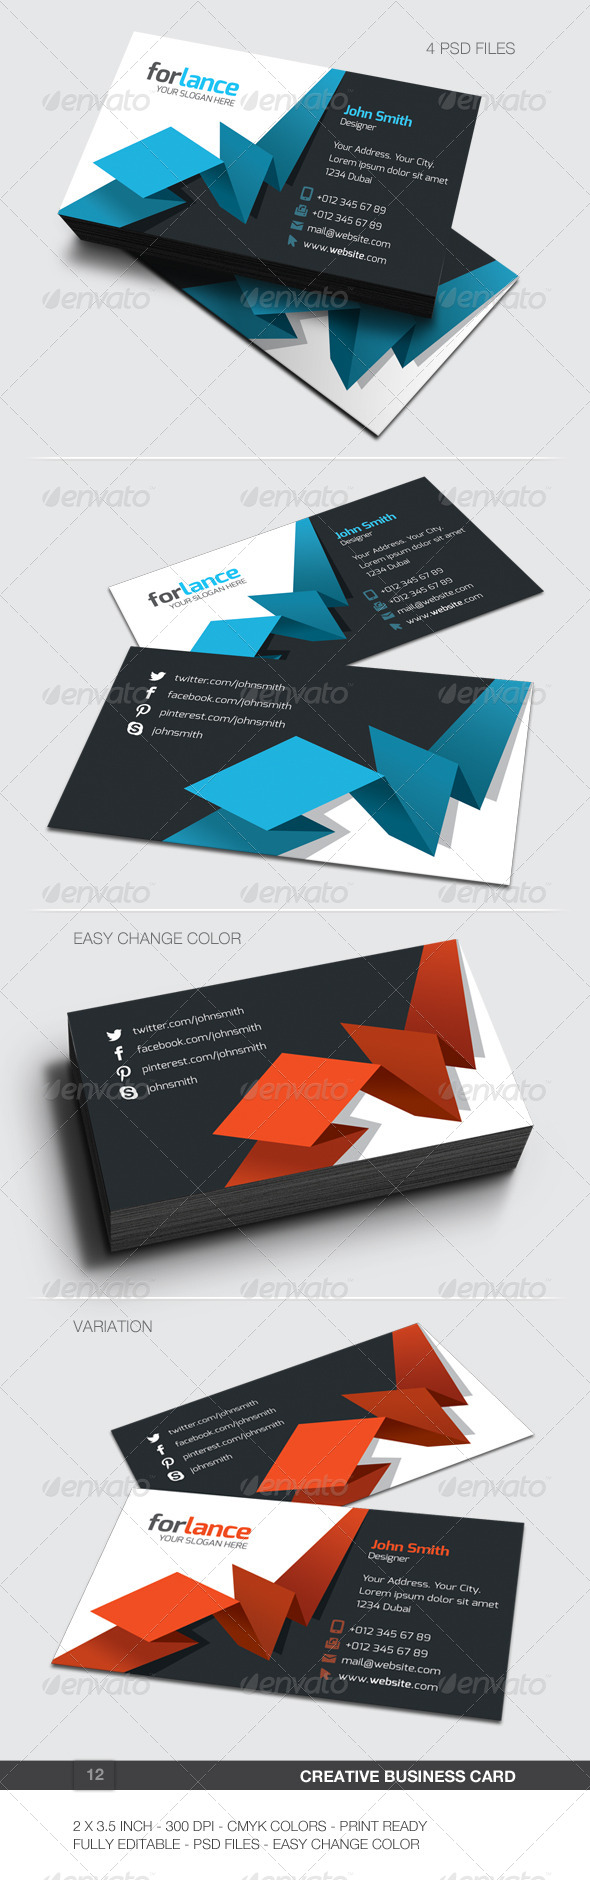 GraphicRiver Creative Business Card 12 6087581